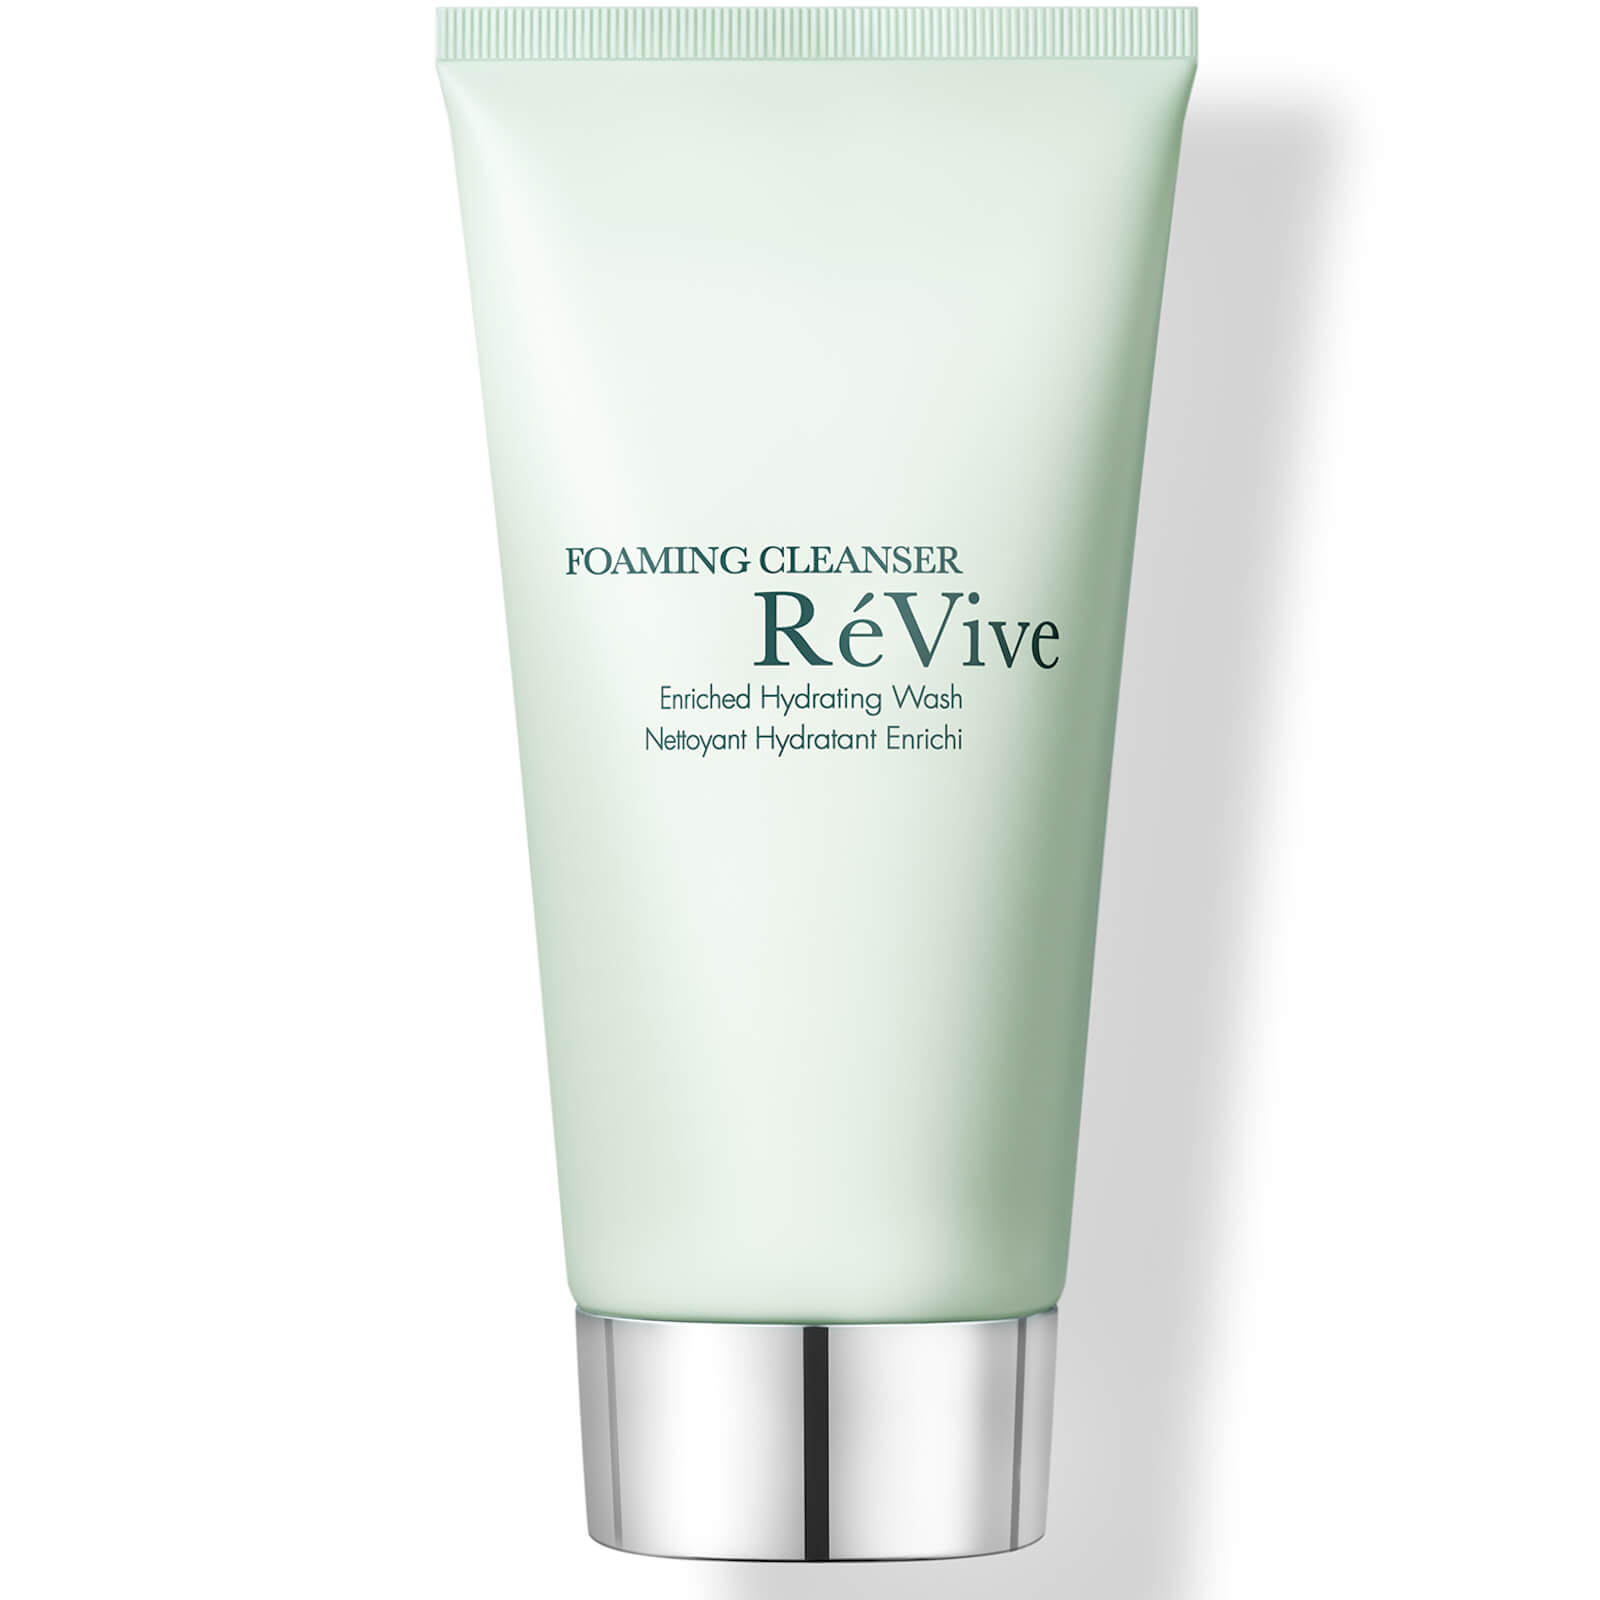 Watch a story about RÉVIVE FOAMING CLEANSER ENRICHED HYDRATING WASH 125ML